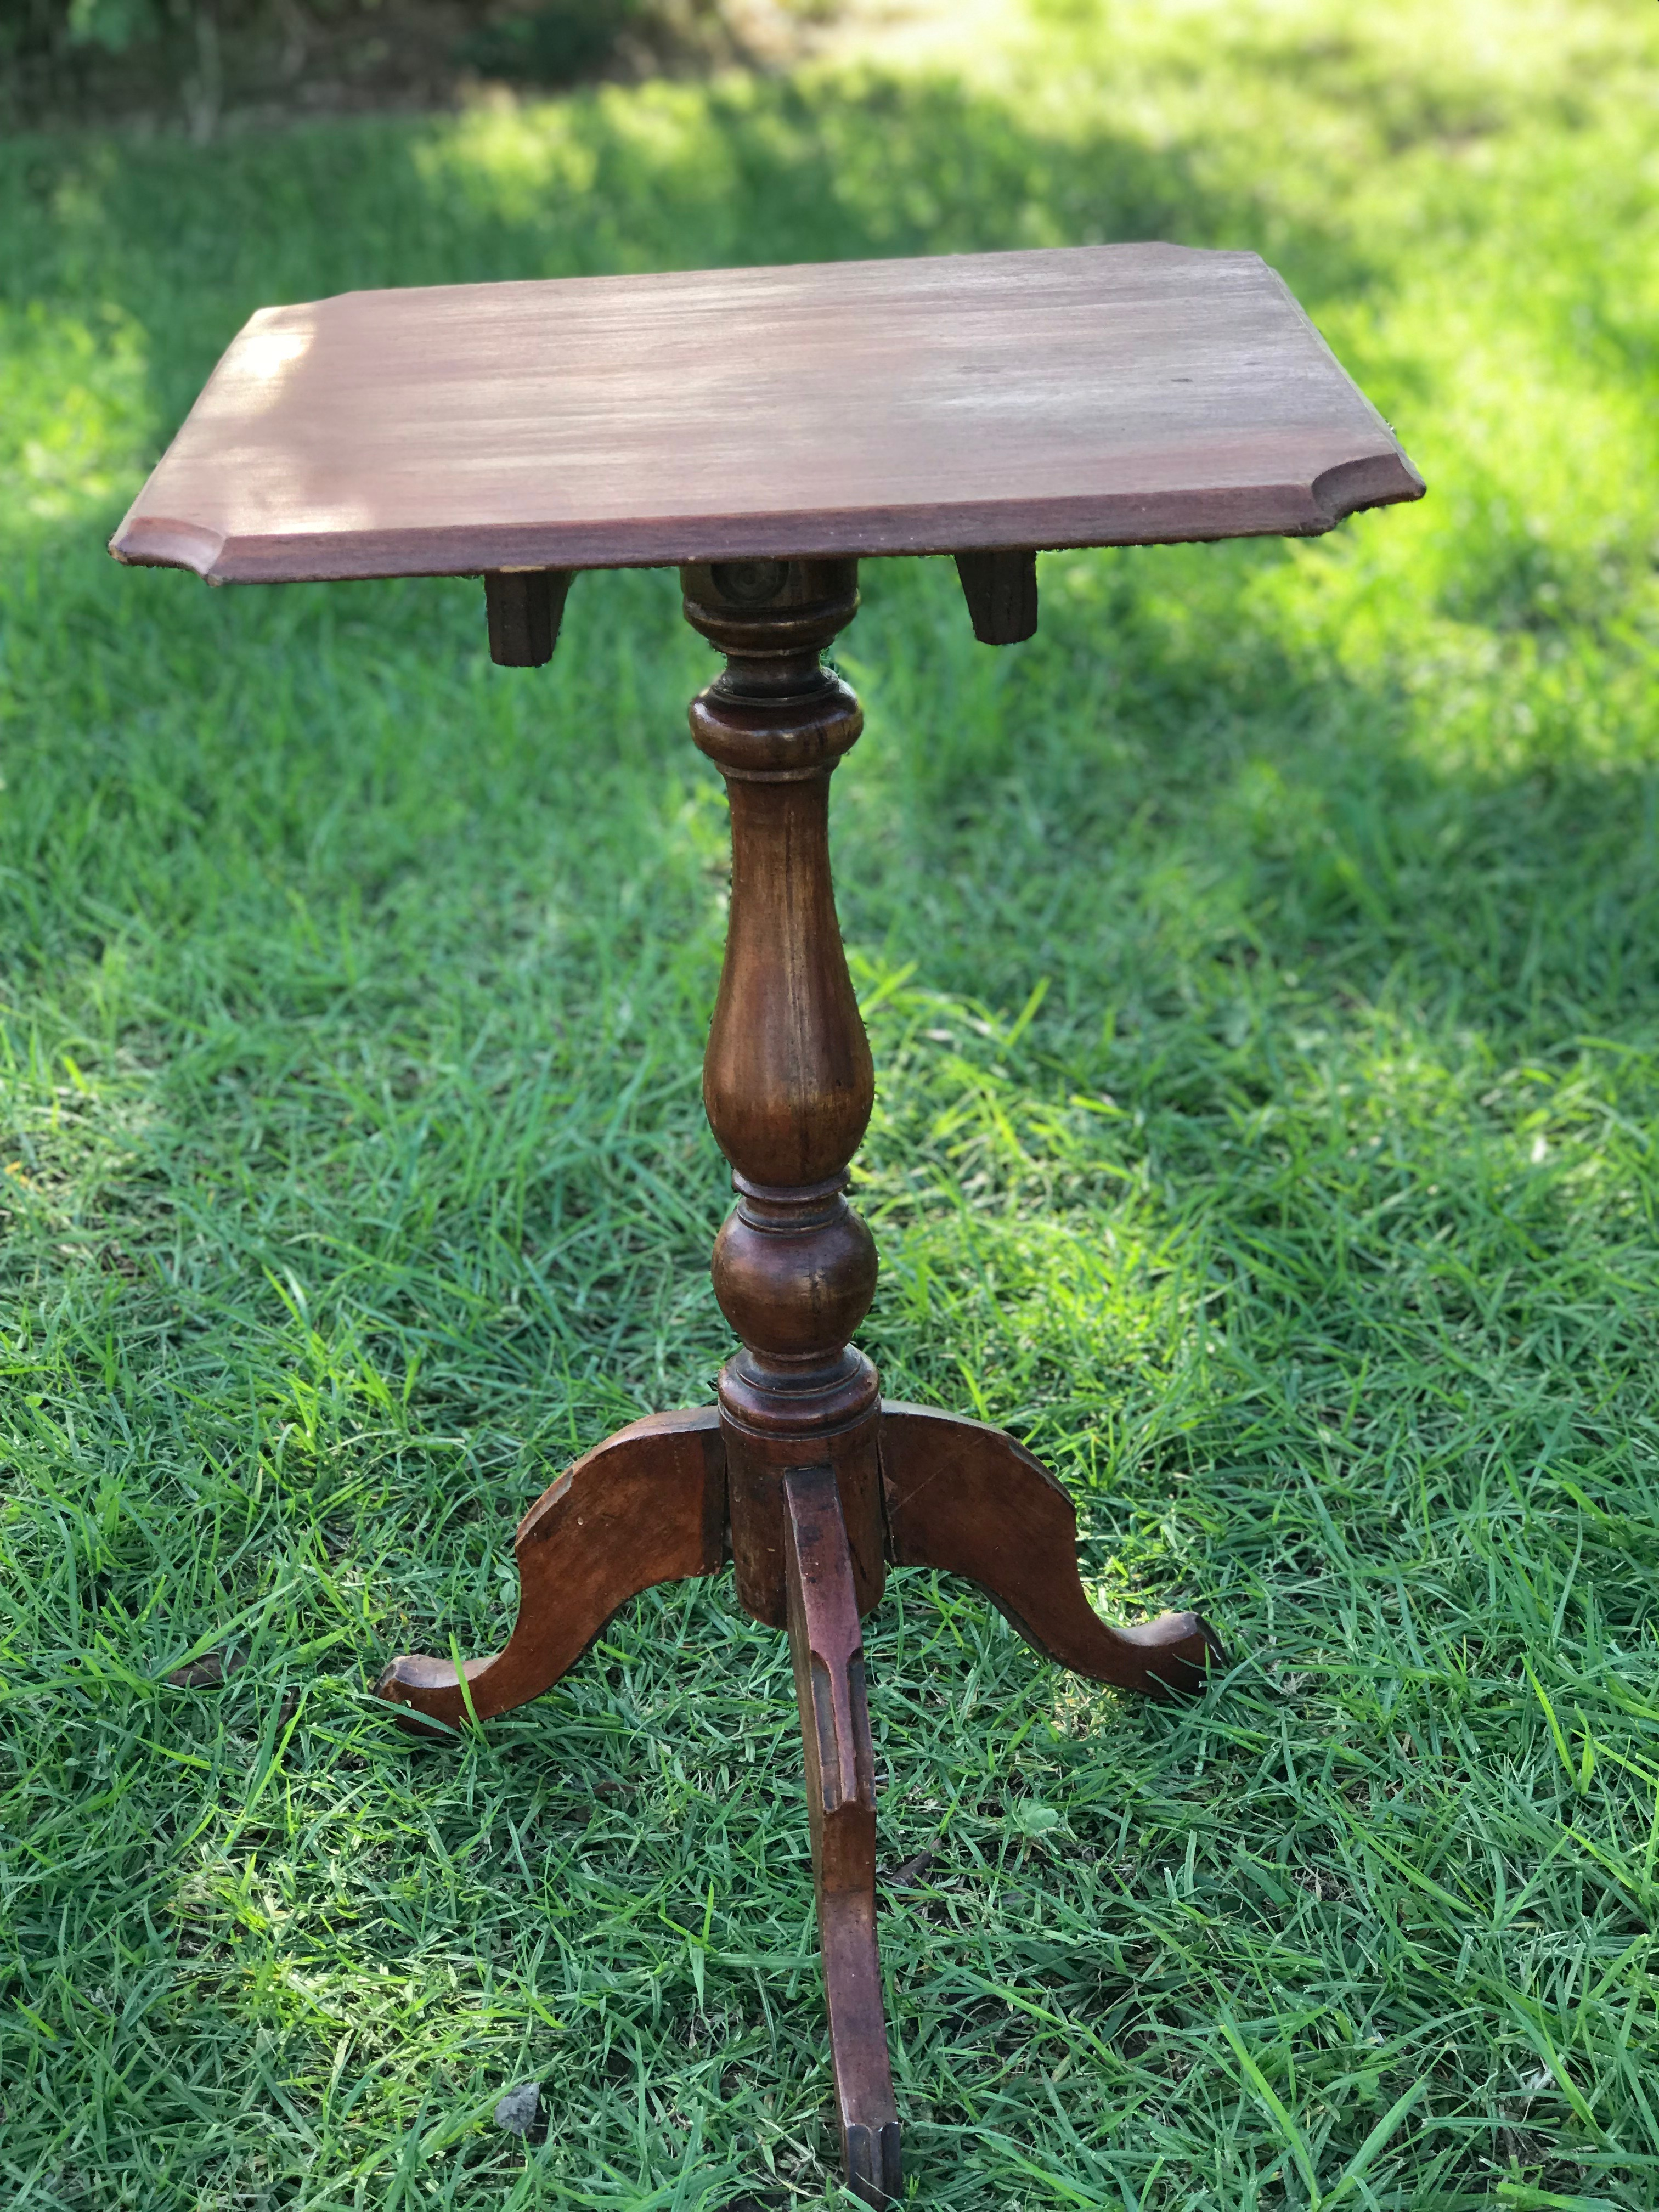 Vintage Side/Cake Table